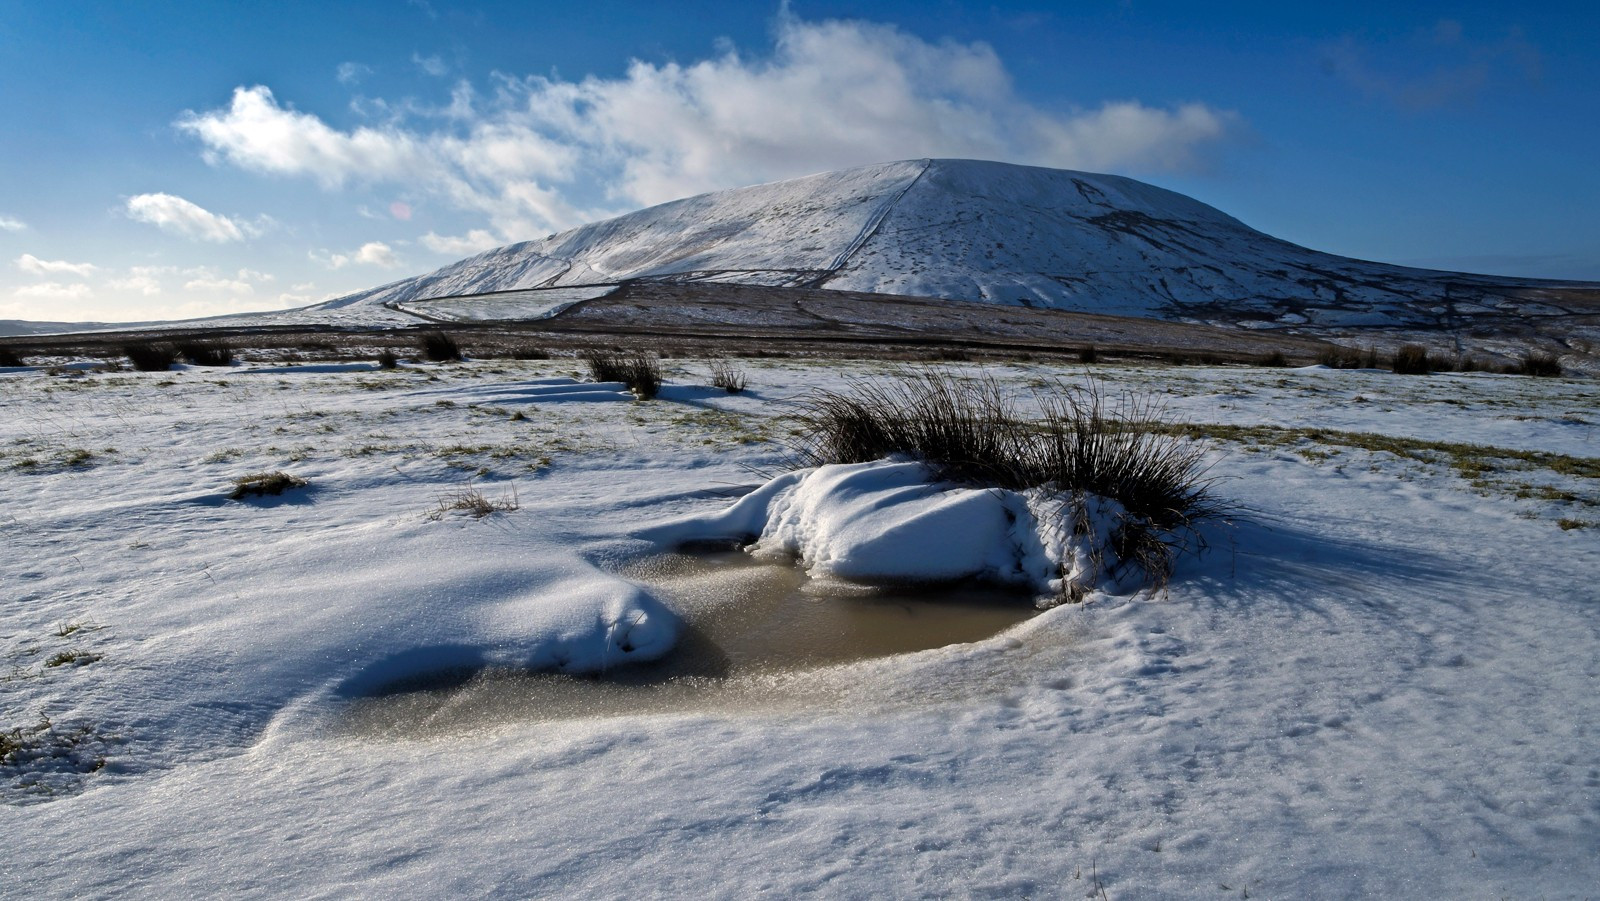 7.Pendle Hill in winter